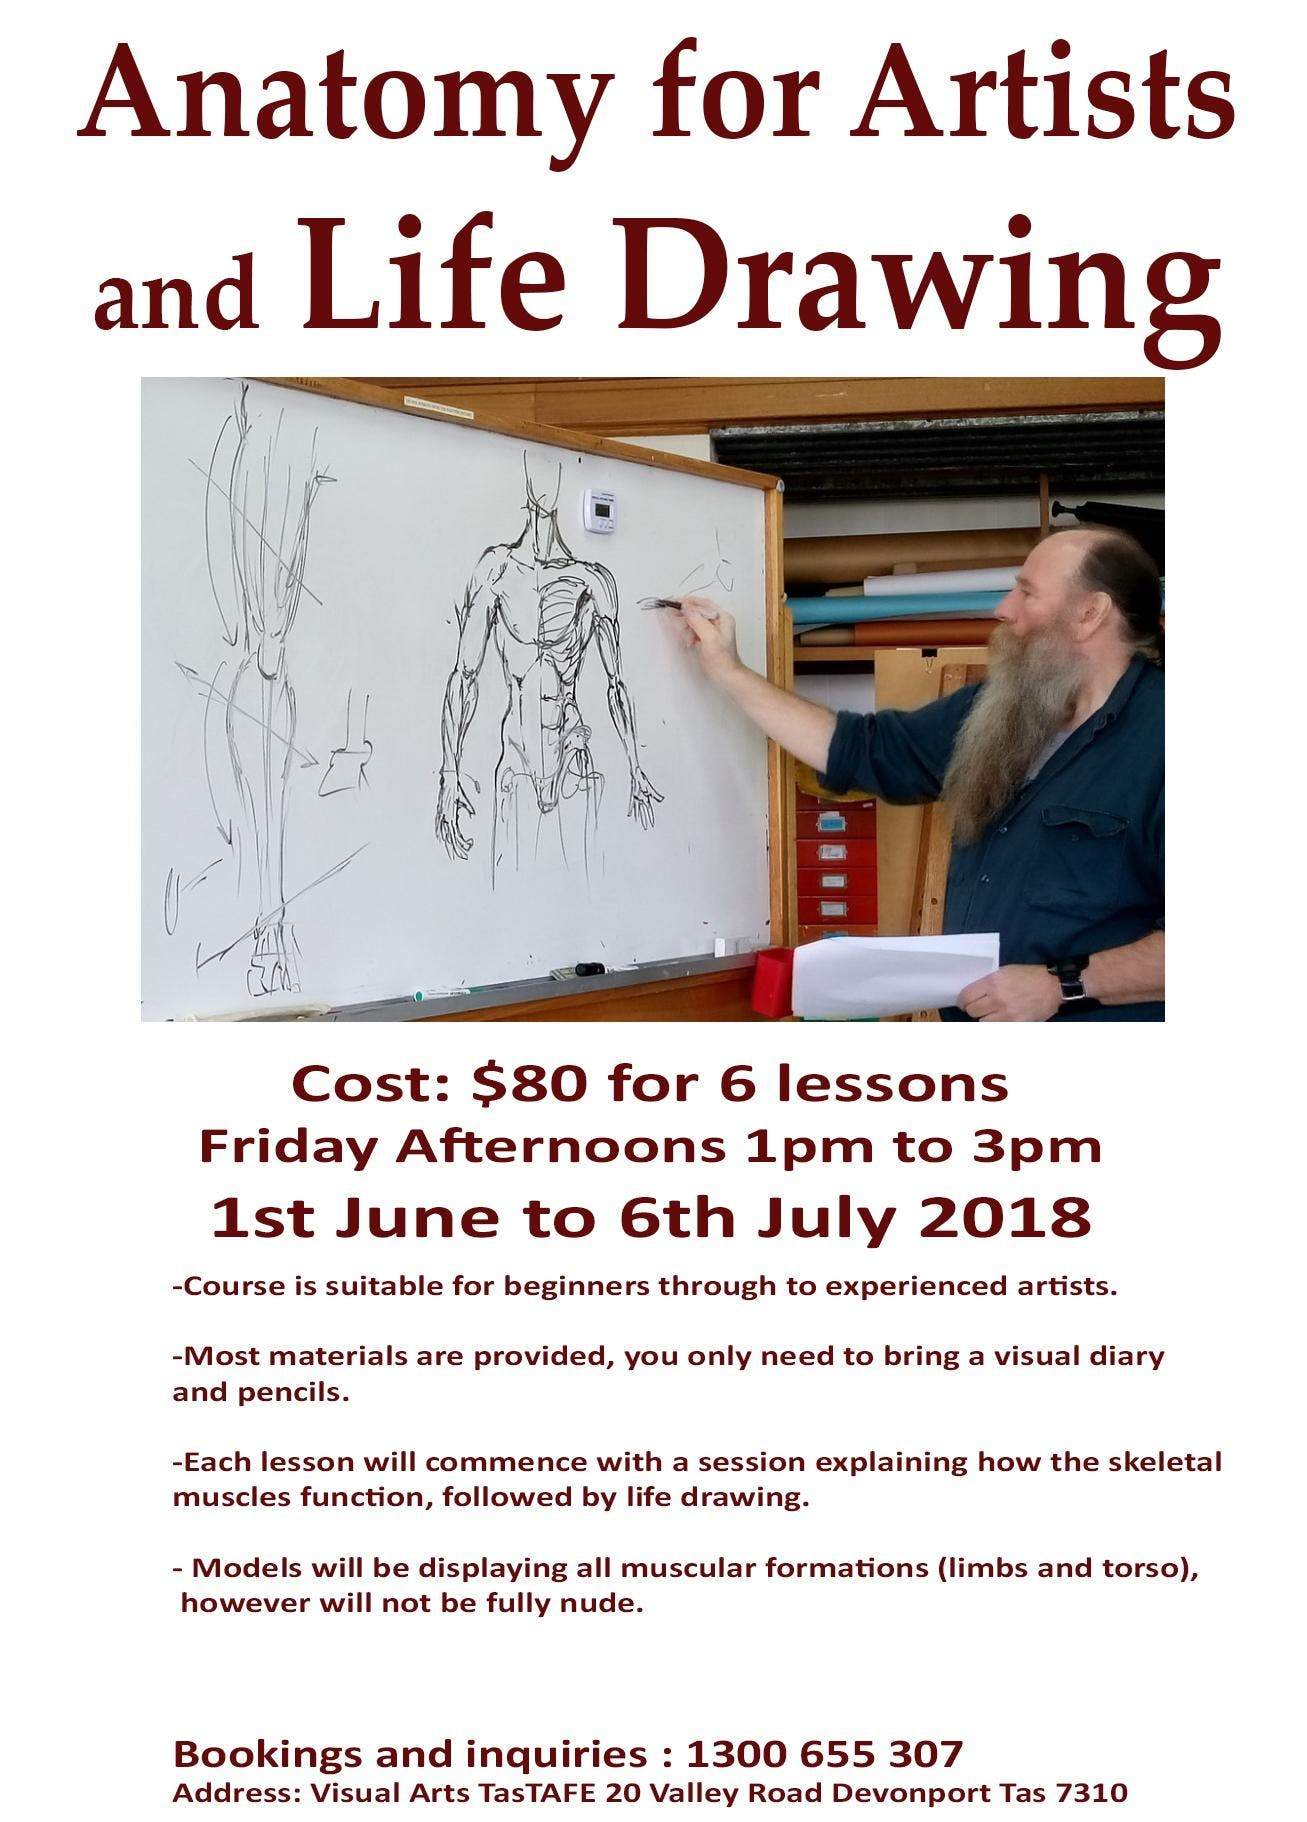 Anatomy for Artists and Life Drawing - 1 JUN 2018